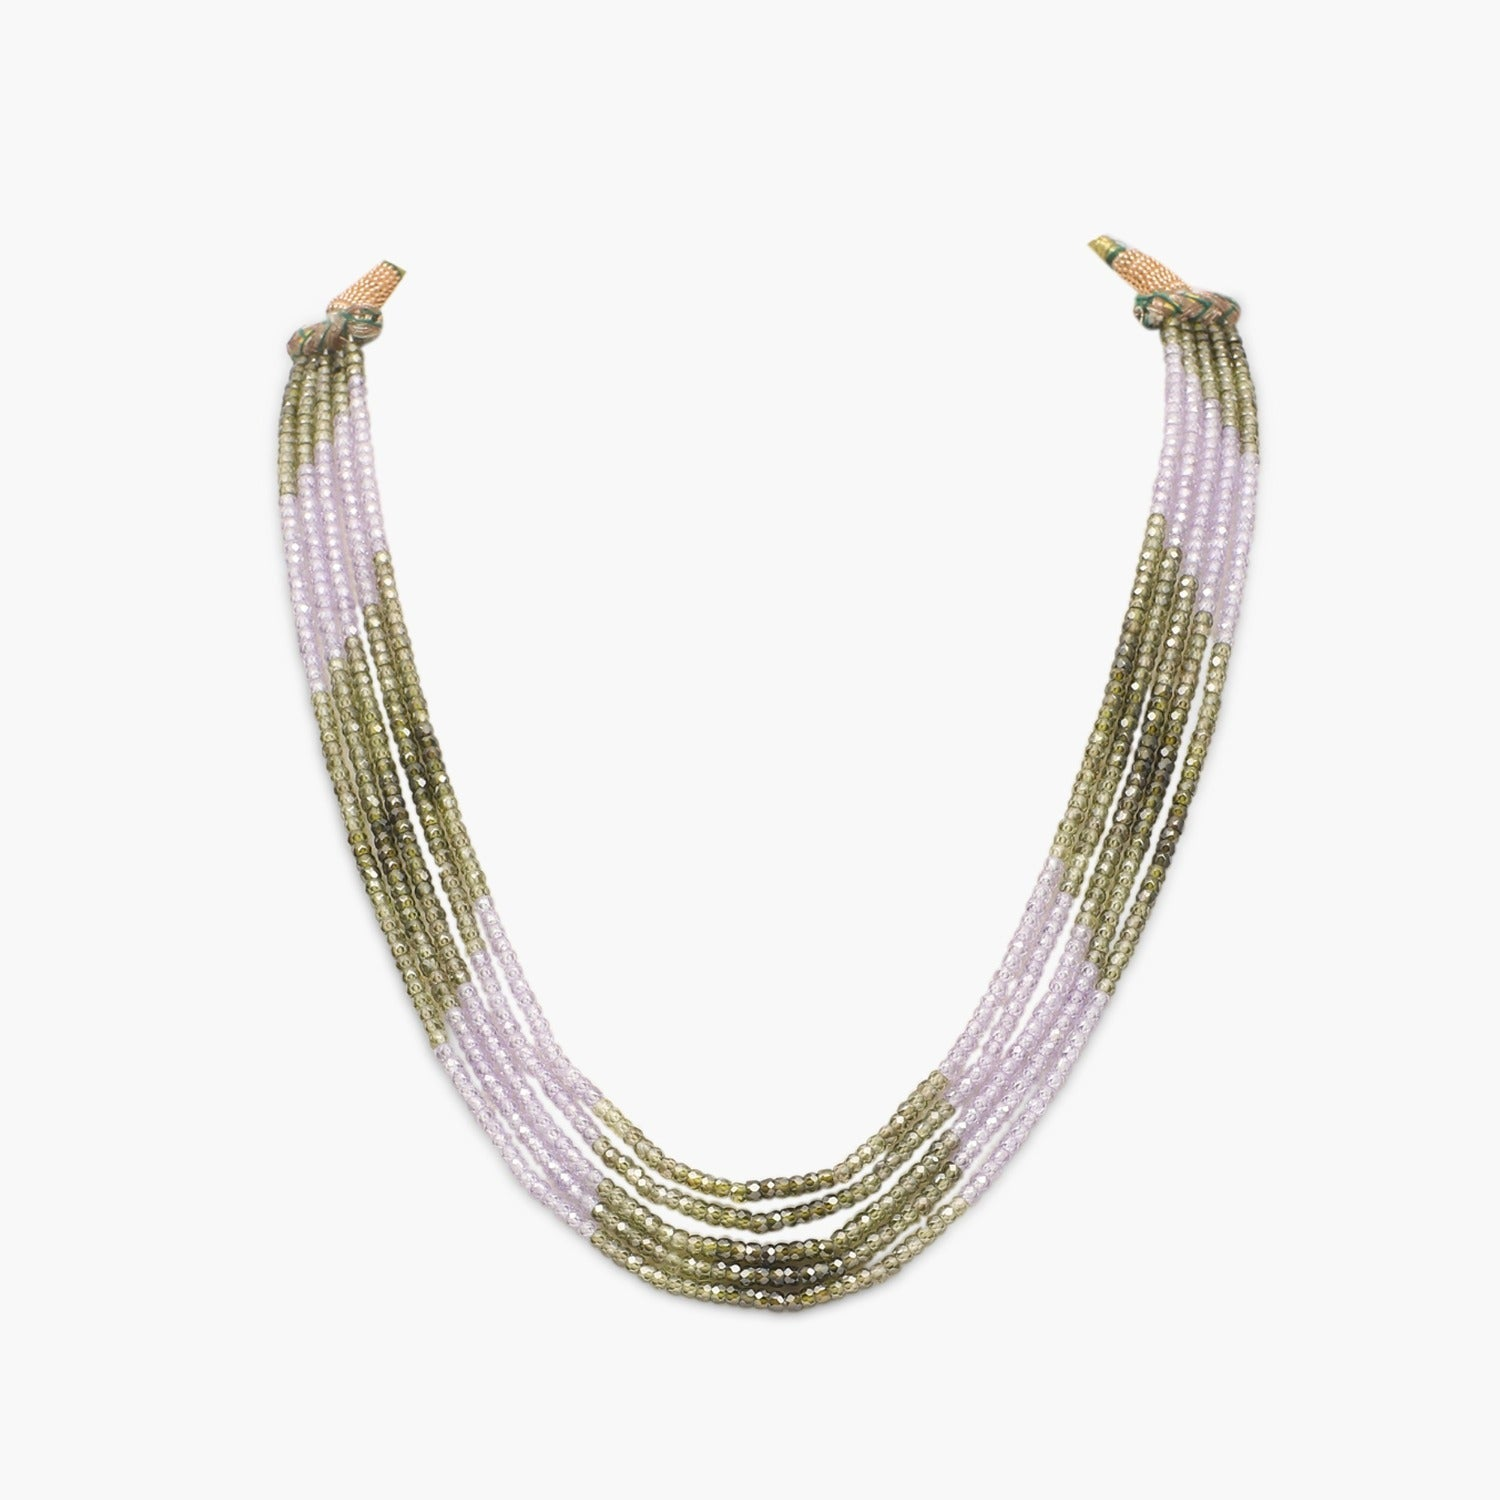 Olive with Lavender Cubic Zirconia Faceted Beads Necklace